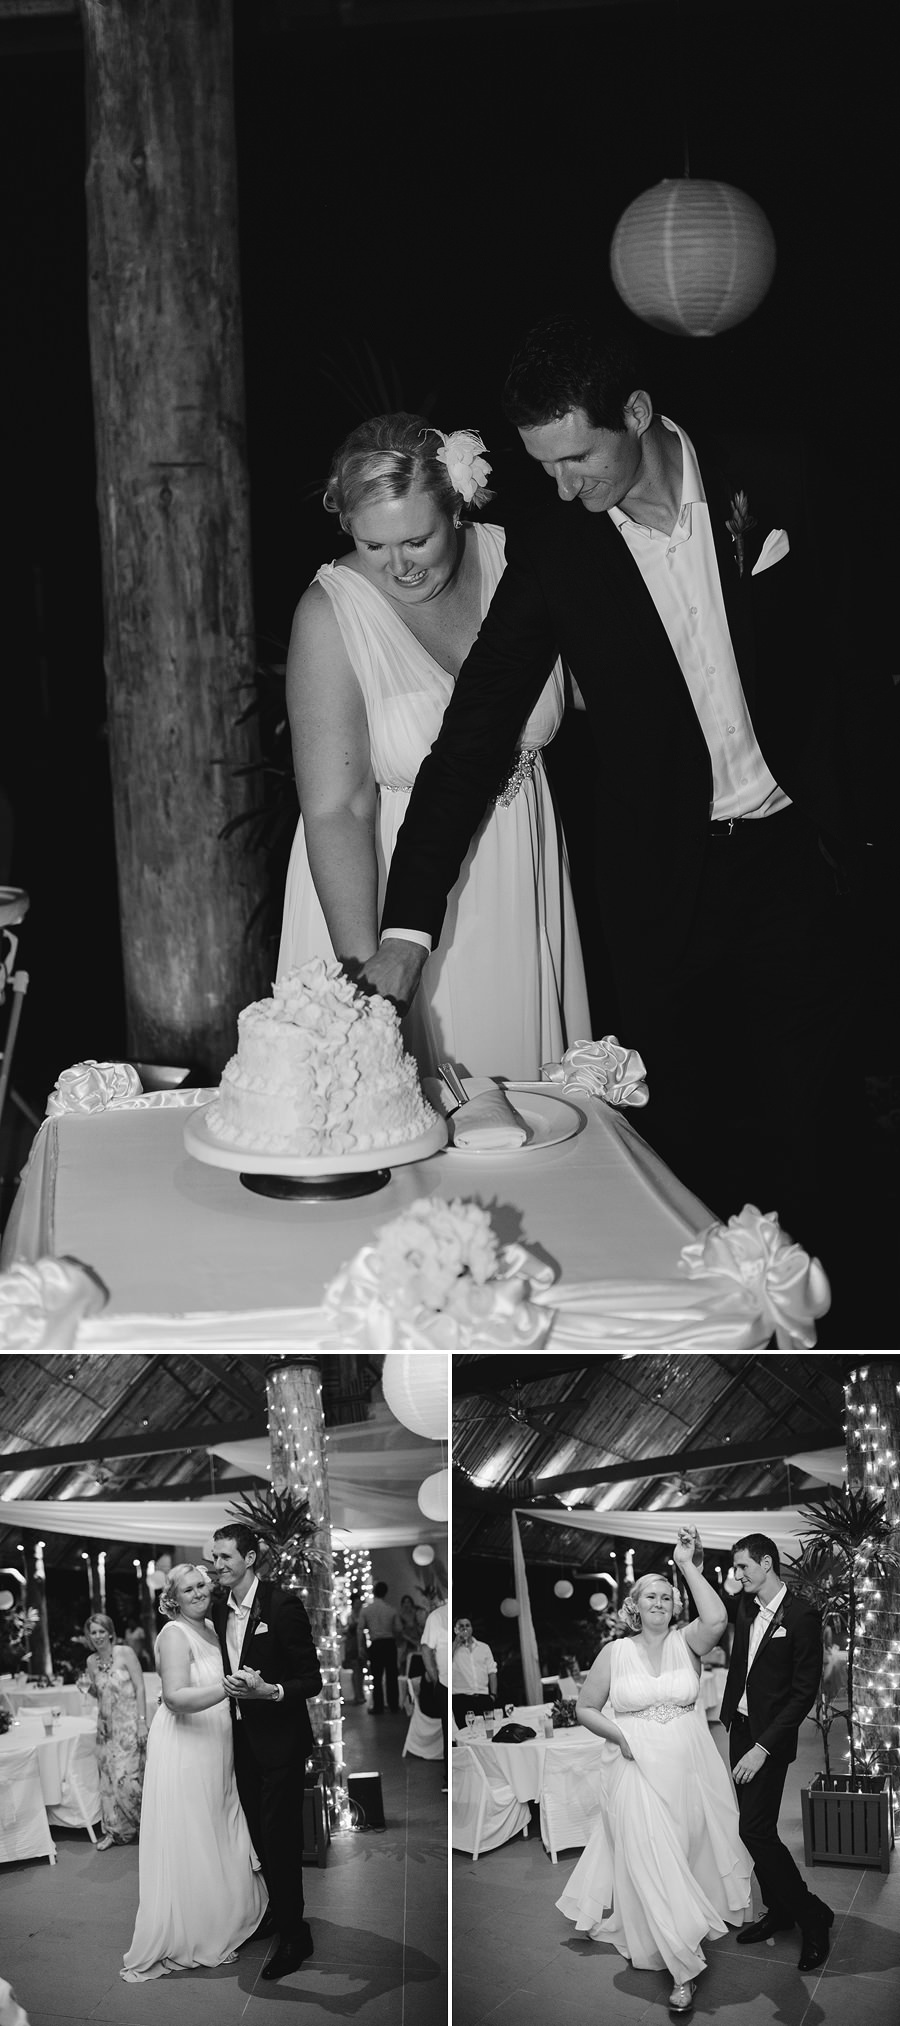 Viti Levu Wedding Photography: Cutting cake